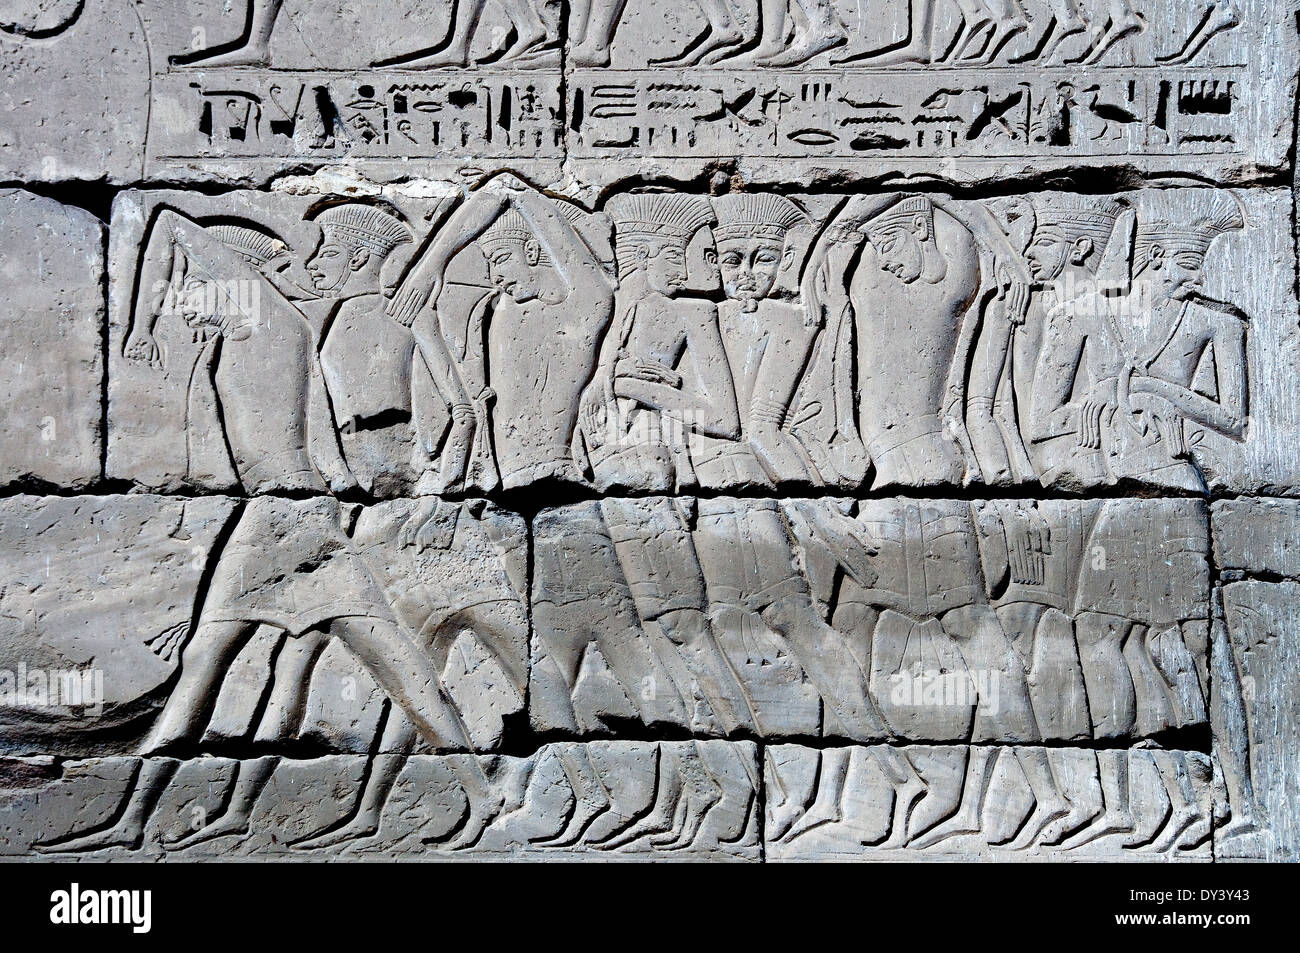 Temple of Ramses III at Medinet Habu: reliefs on the first pylon, won enemies. - Stock Image